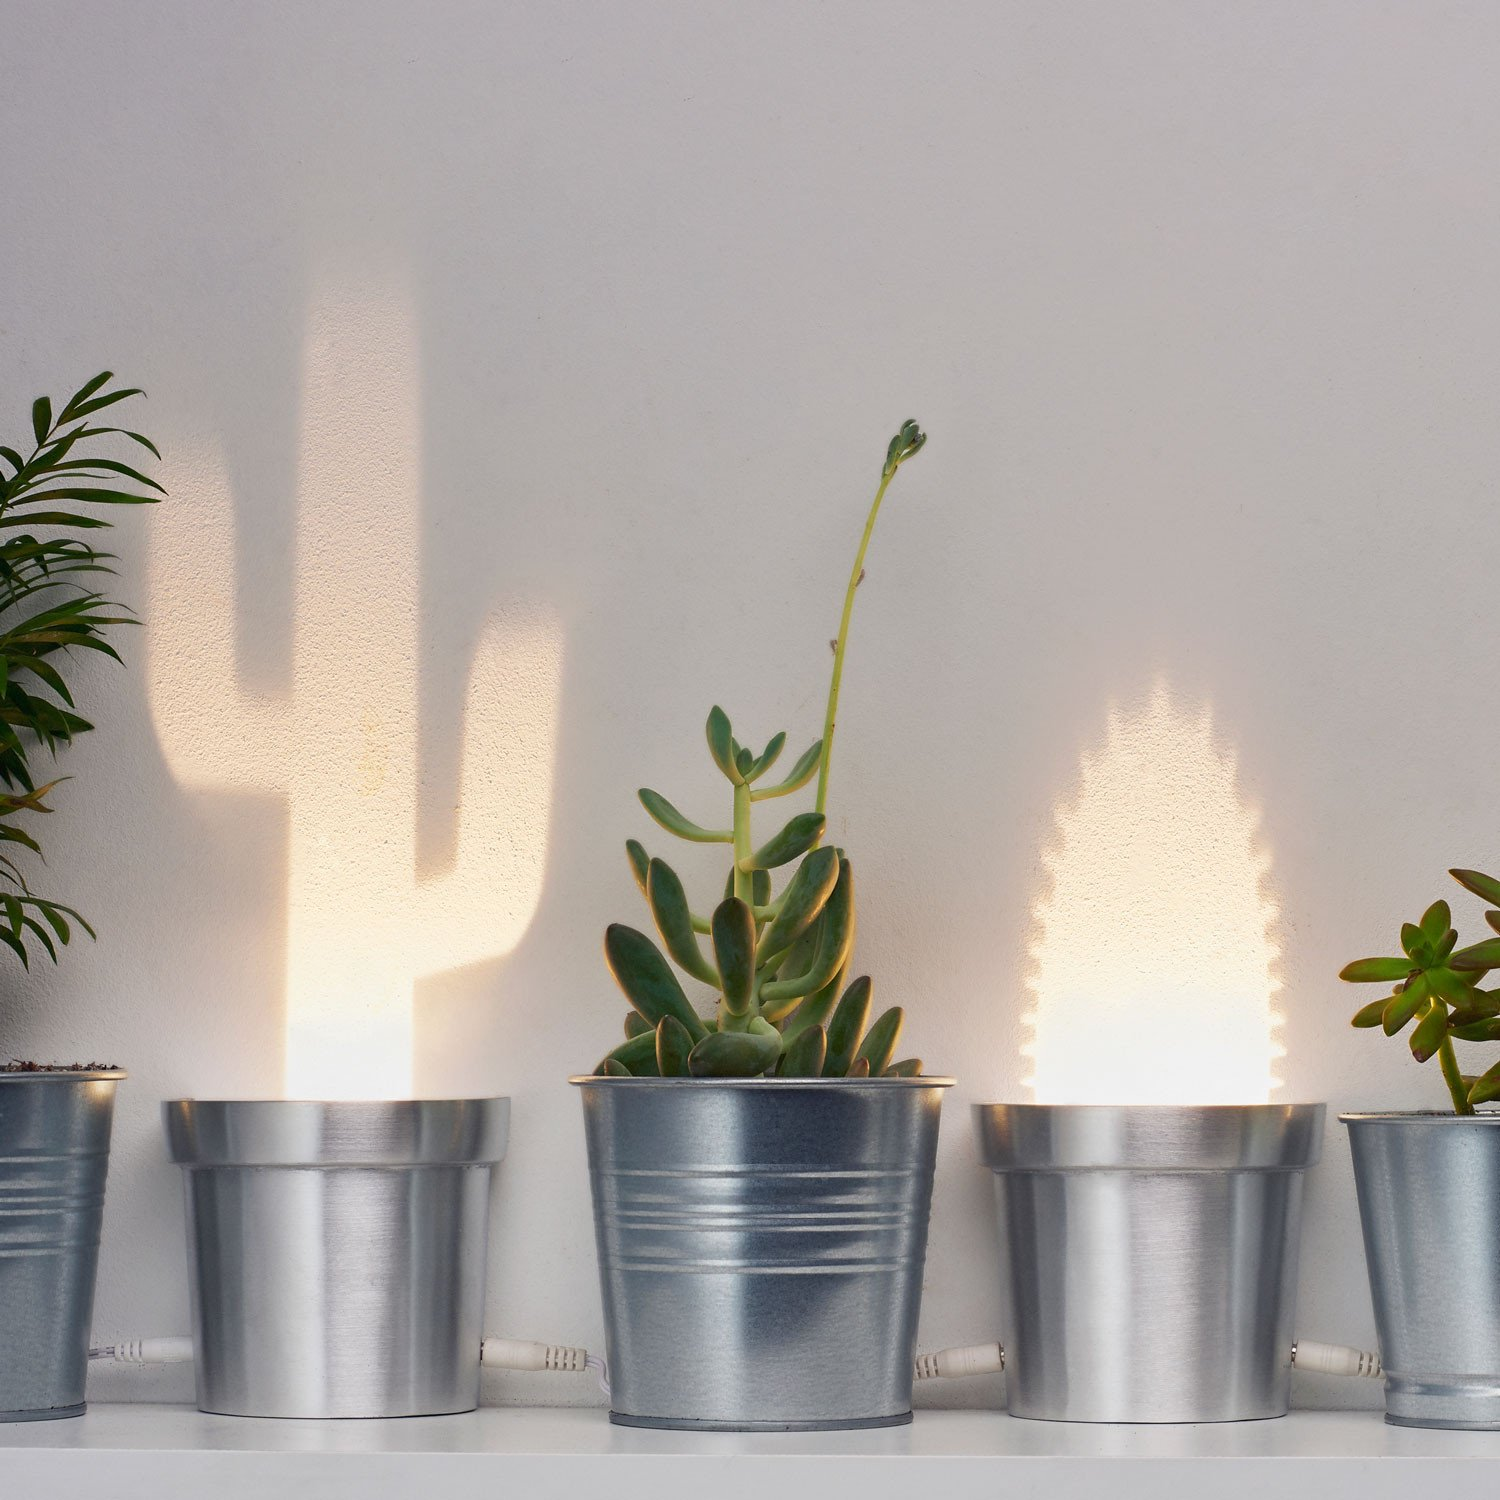 A Set of Three Cactus Lamps in Three Different Shapes Made Aluminum ...